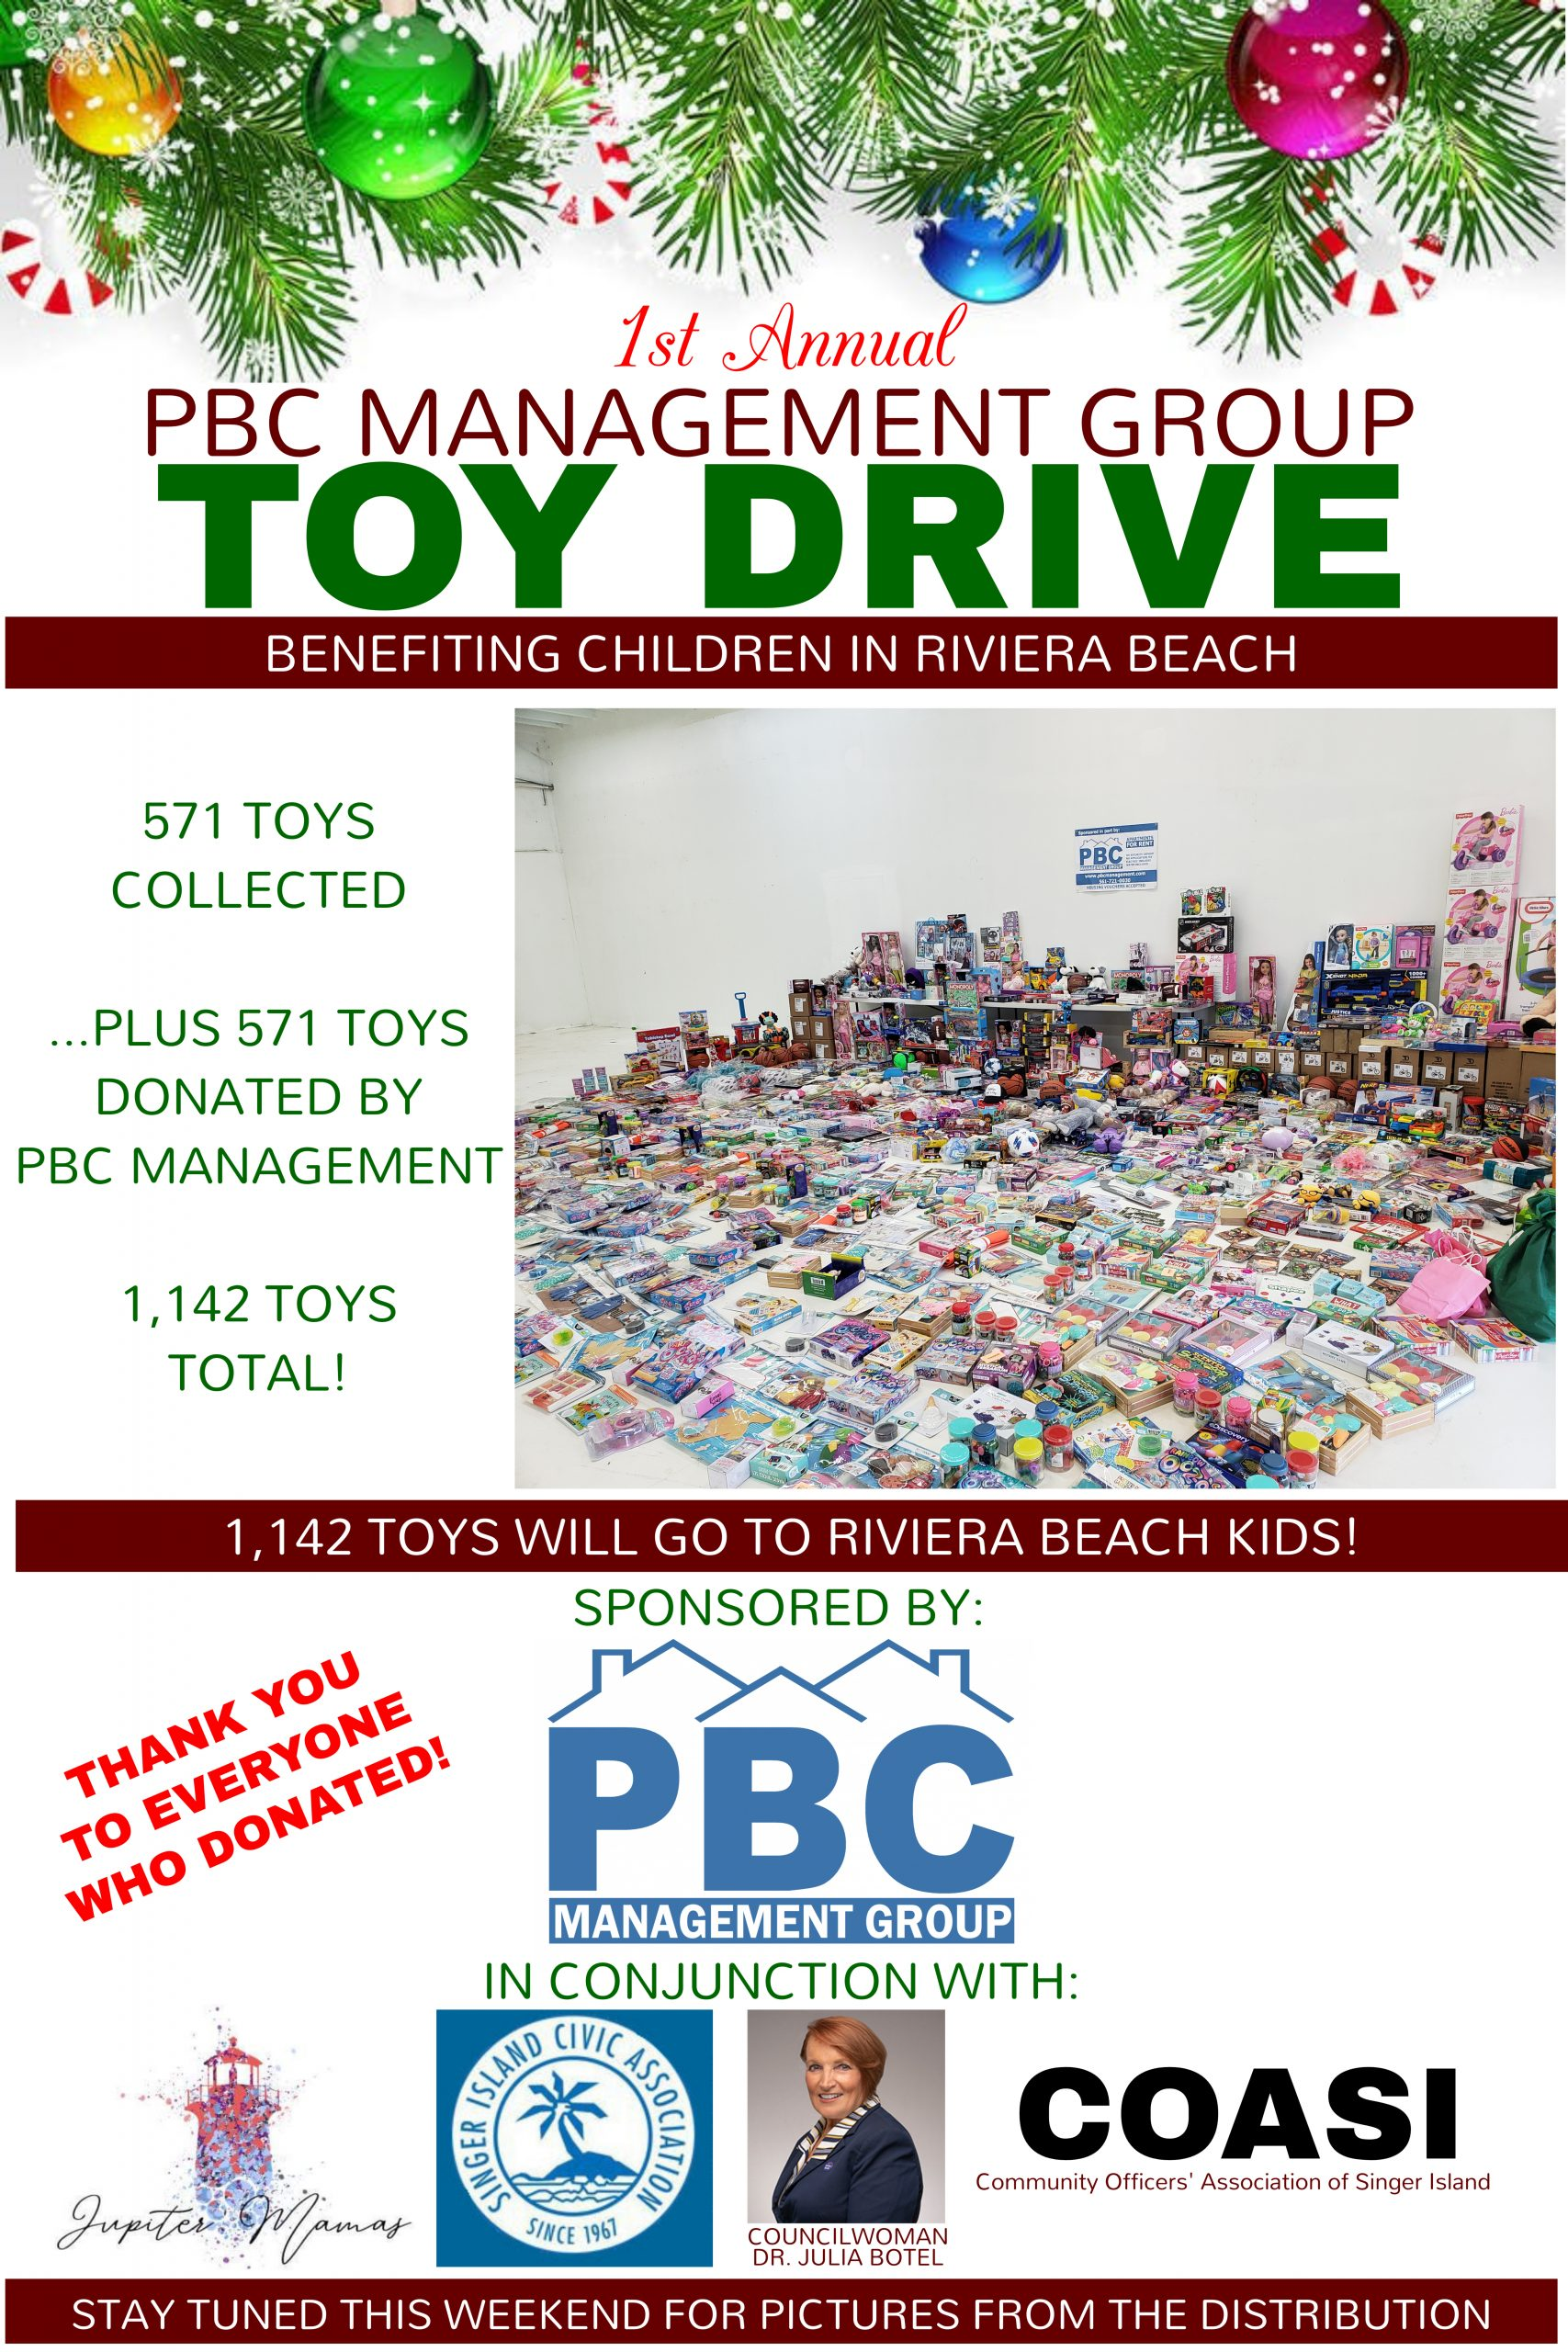 PBC Management Toy Drive